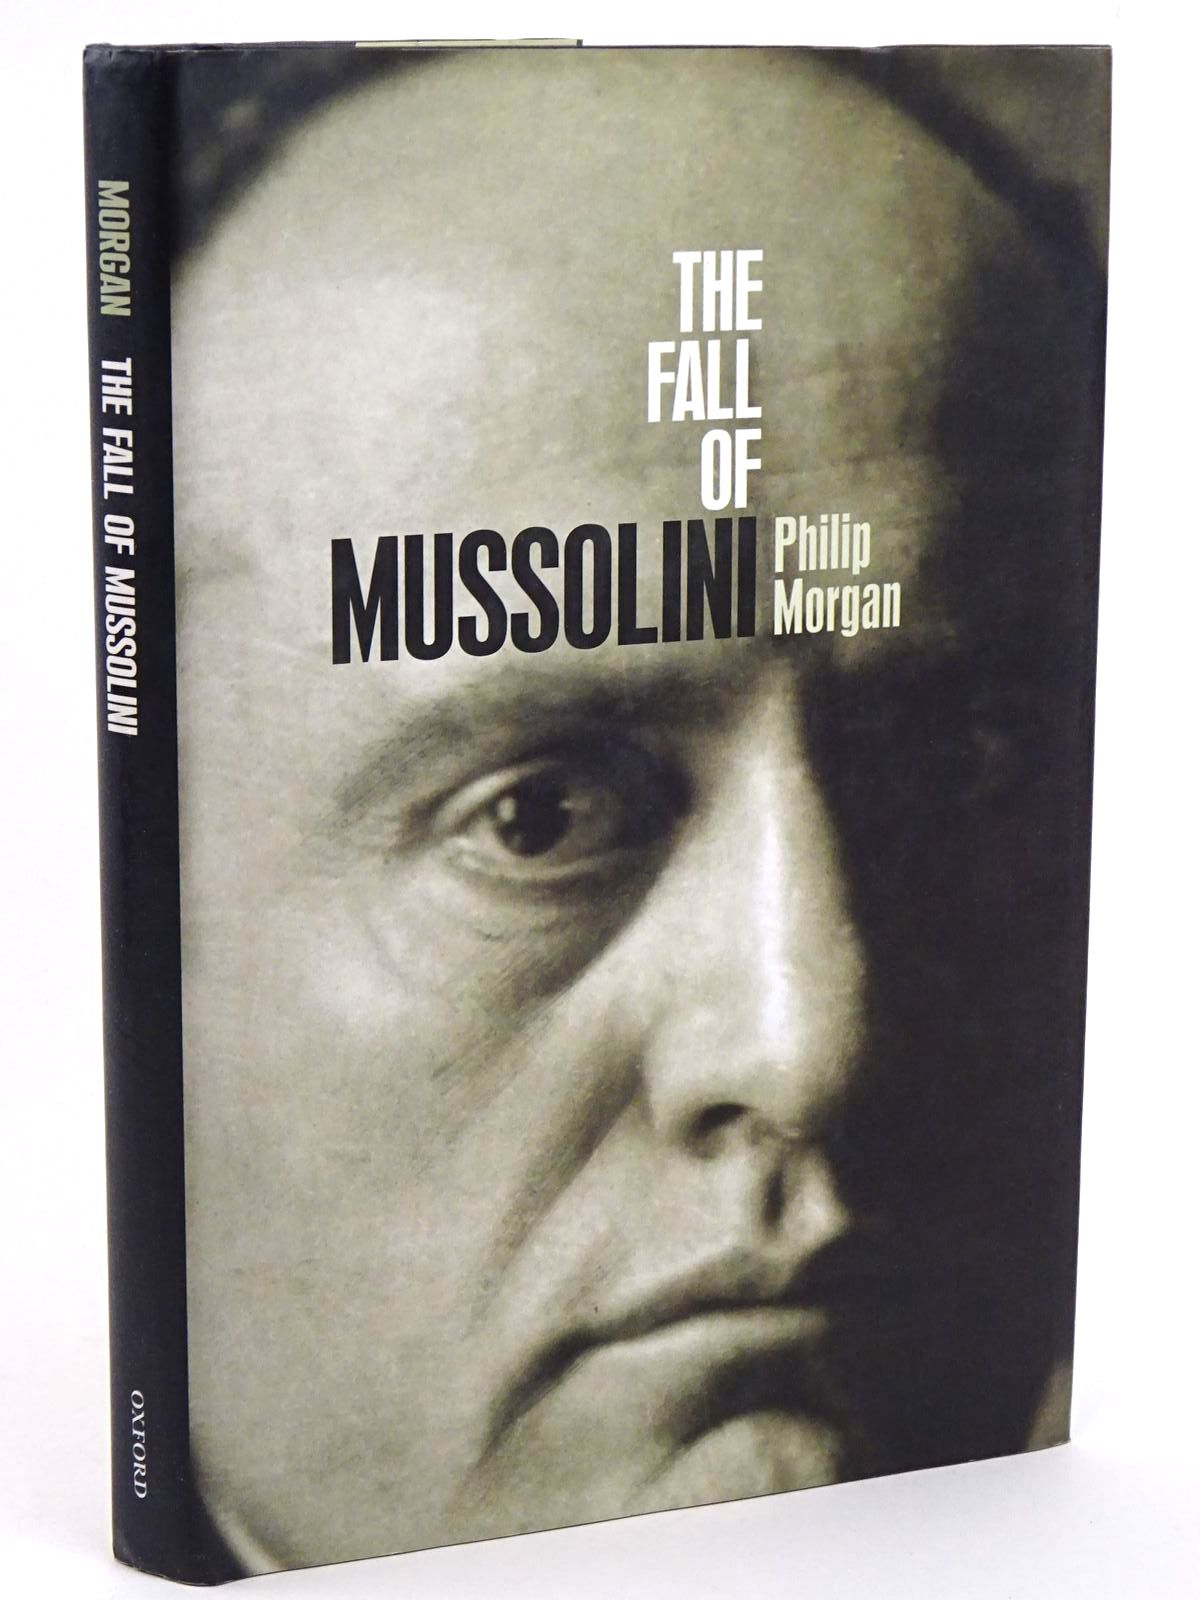 Photo of THE FALL OF MUSSOLINI: ITALY, THE ITALIANS, AND THE SECOND WORLD WAR written by Morgan, Philip published by Oxford University Press (STOCK CODE: 1818251)  for sale by Stella & Rose's Books